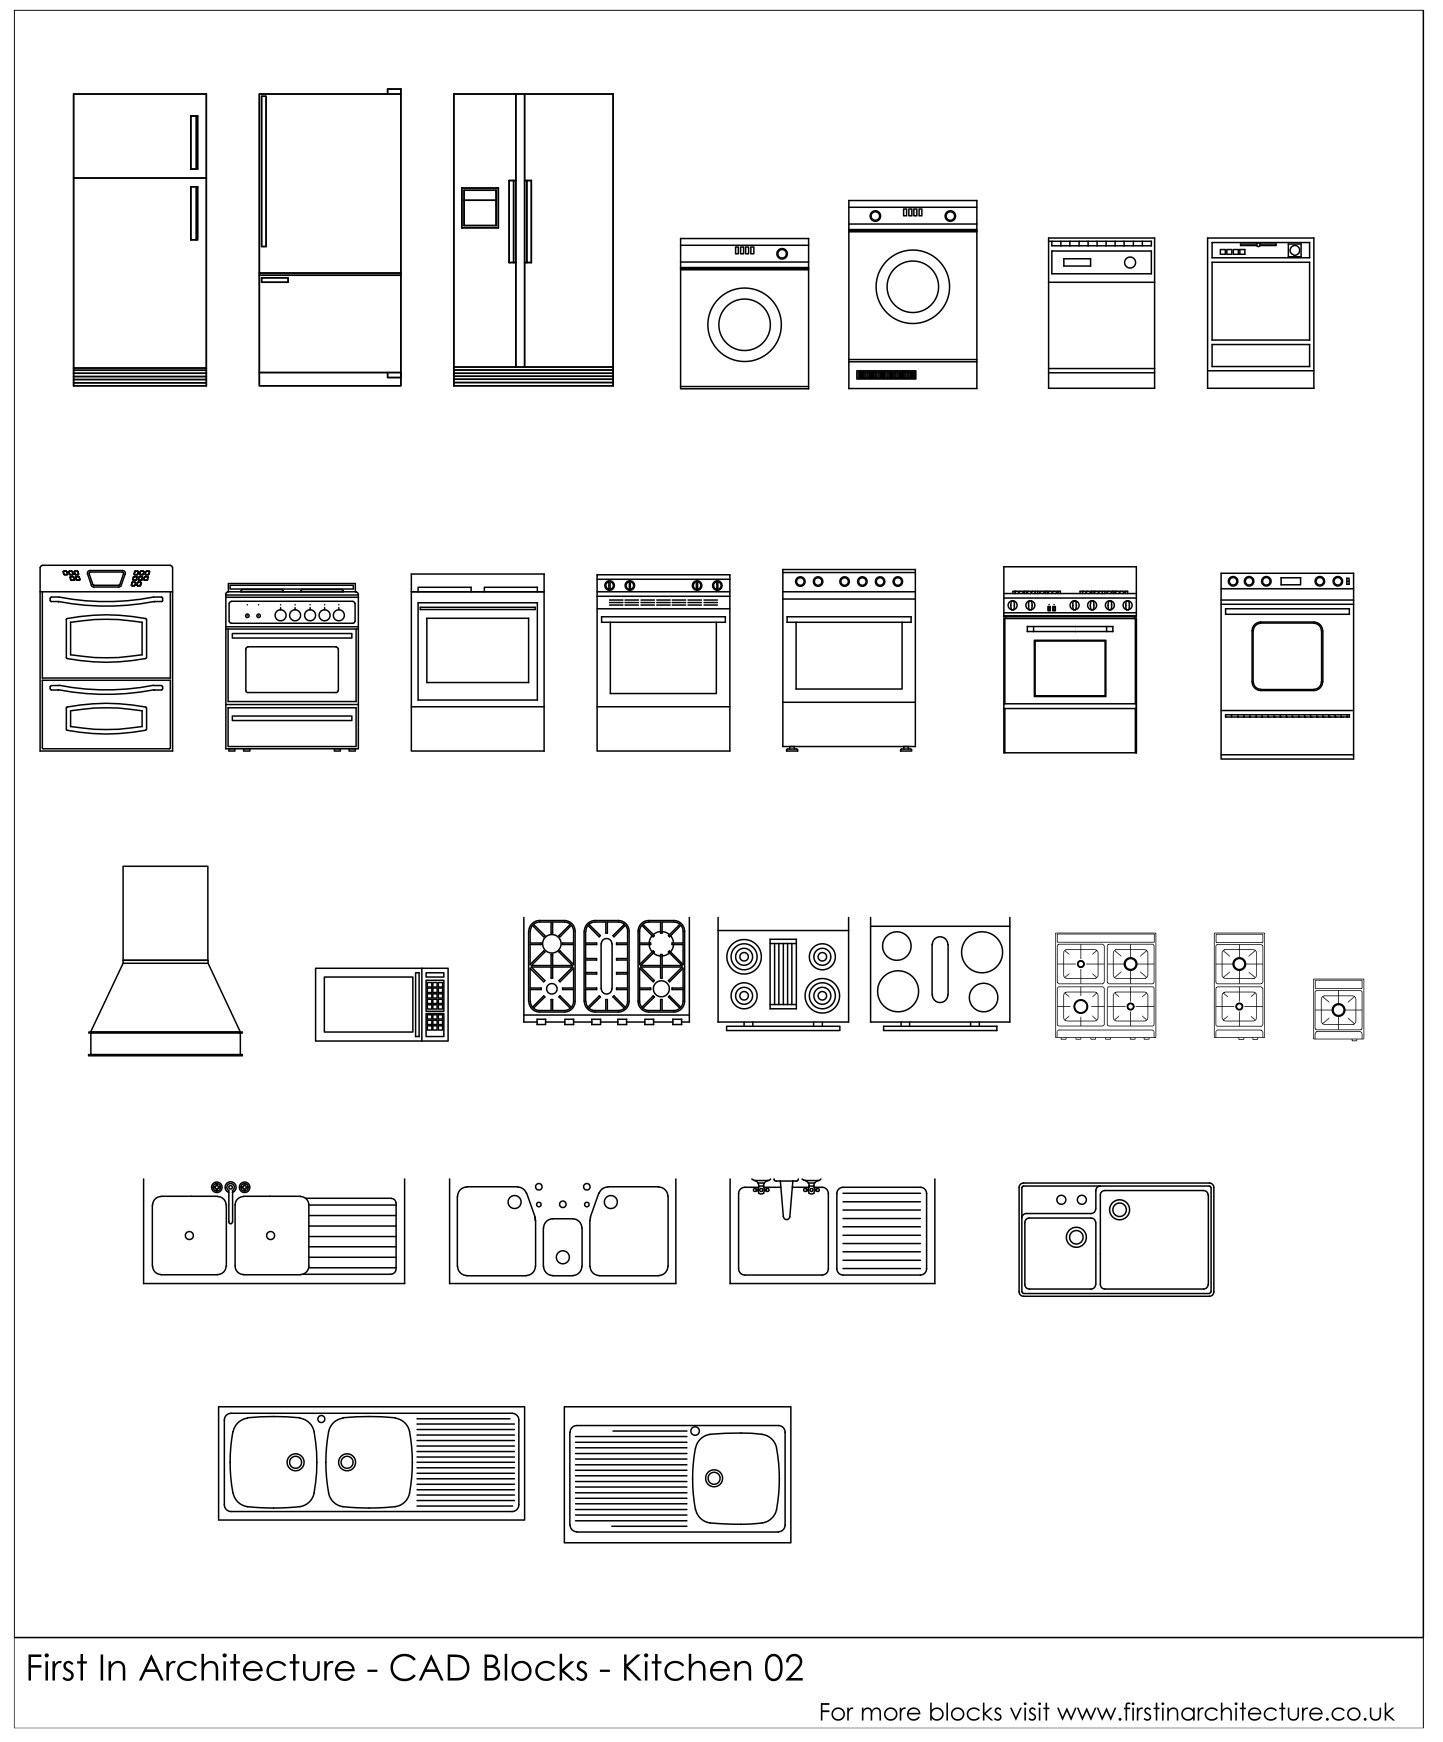 Free cad blocks kitchen appliances 02 first in architecture fia kitchen cad blocks 02 biocorpaavc Image collections